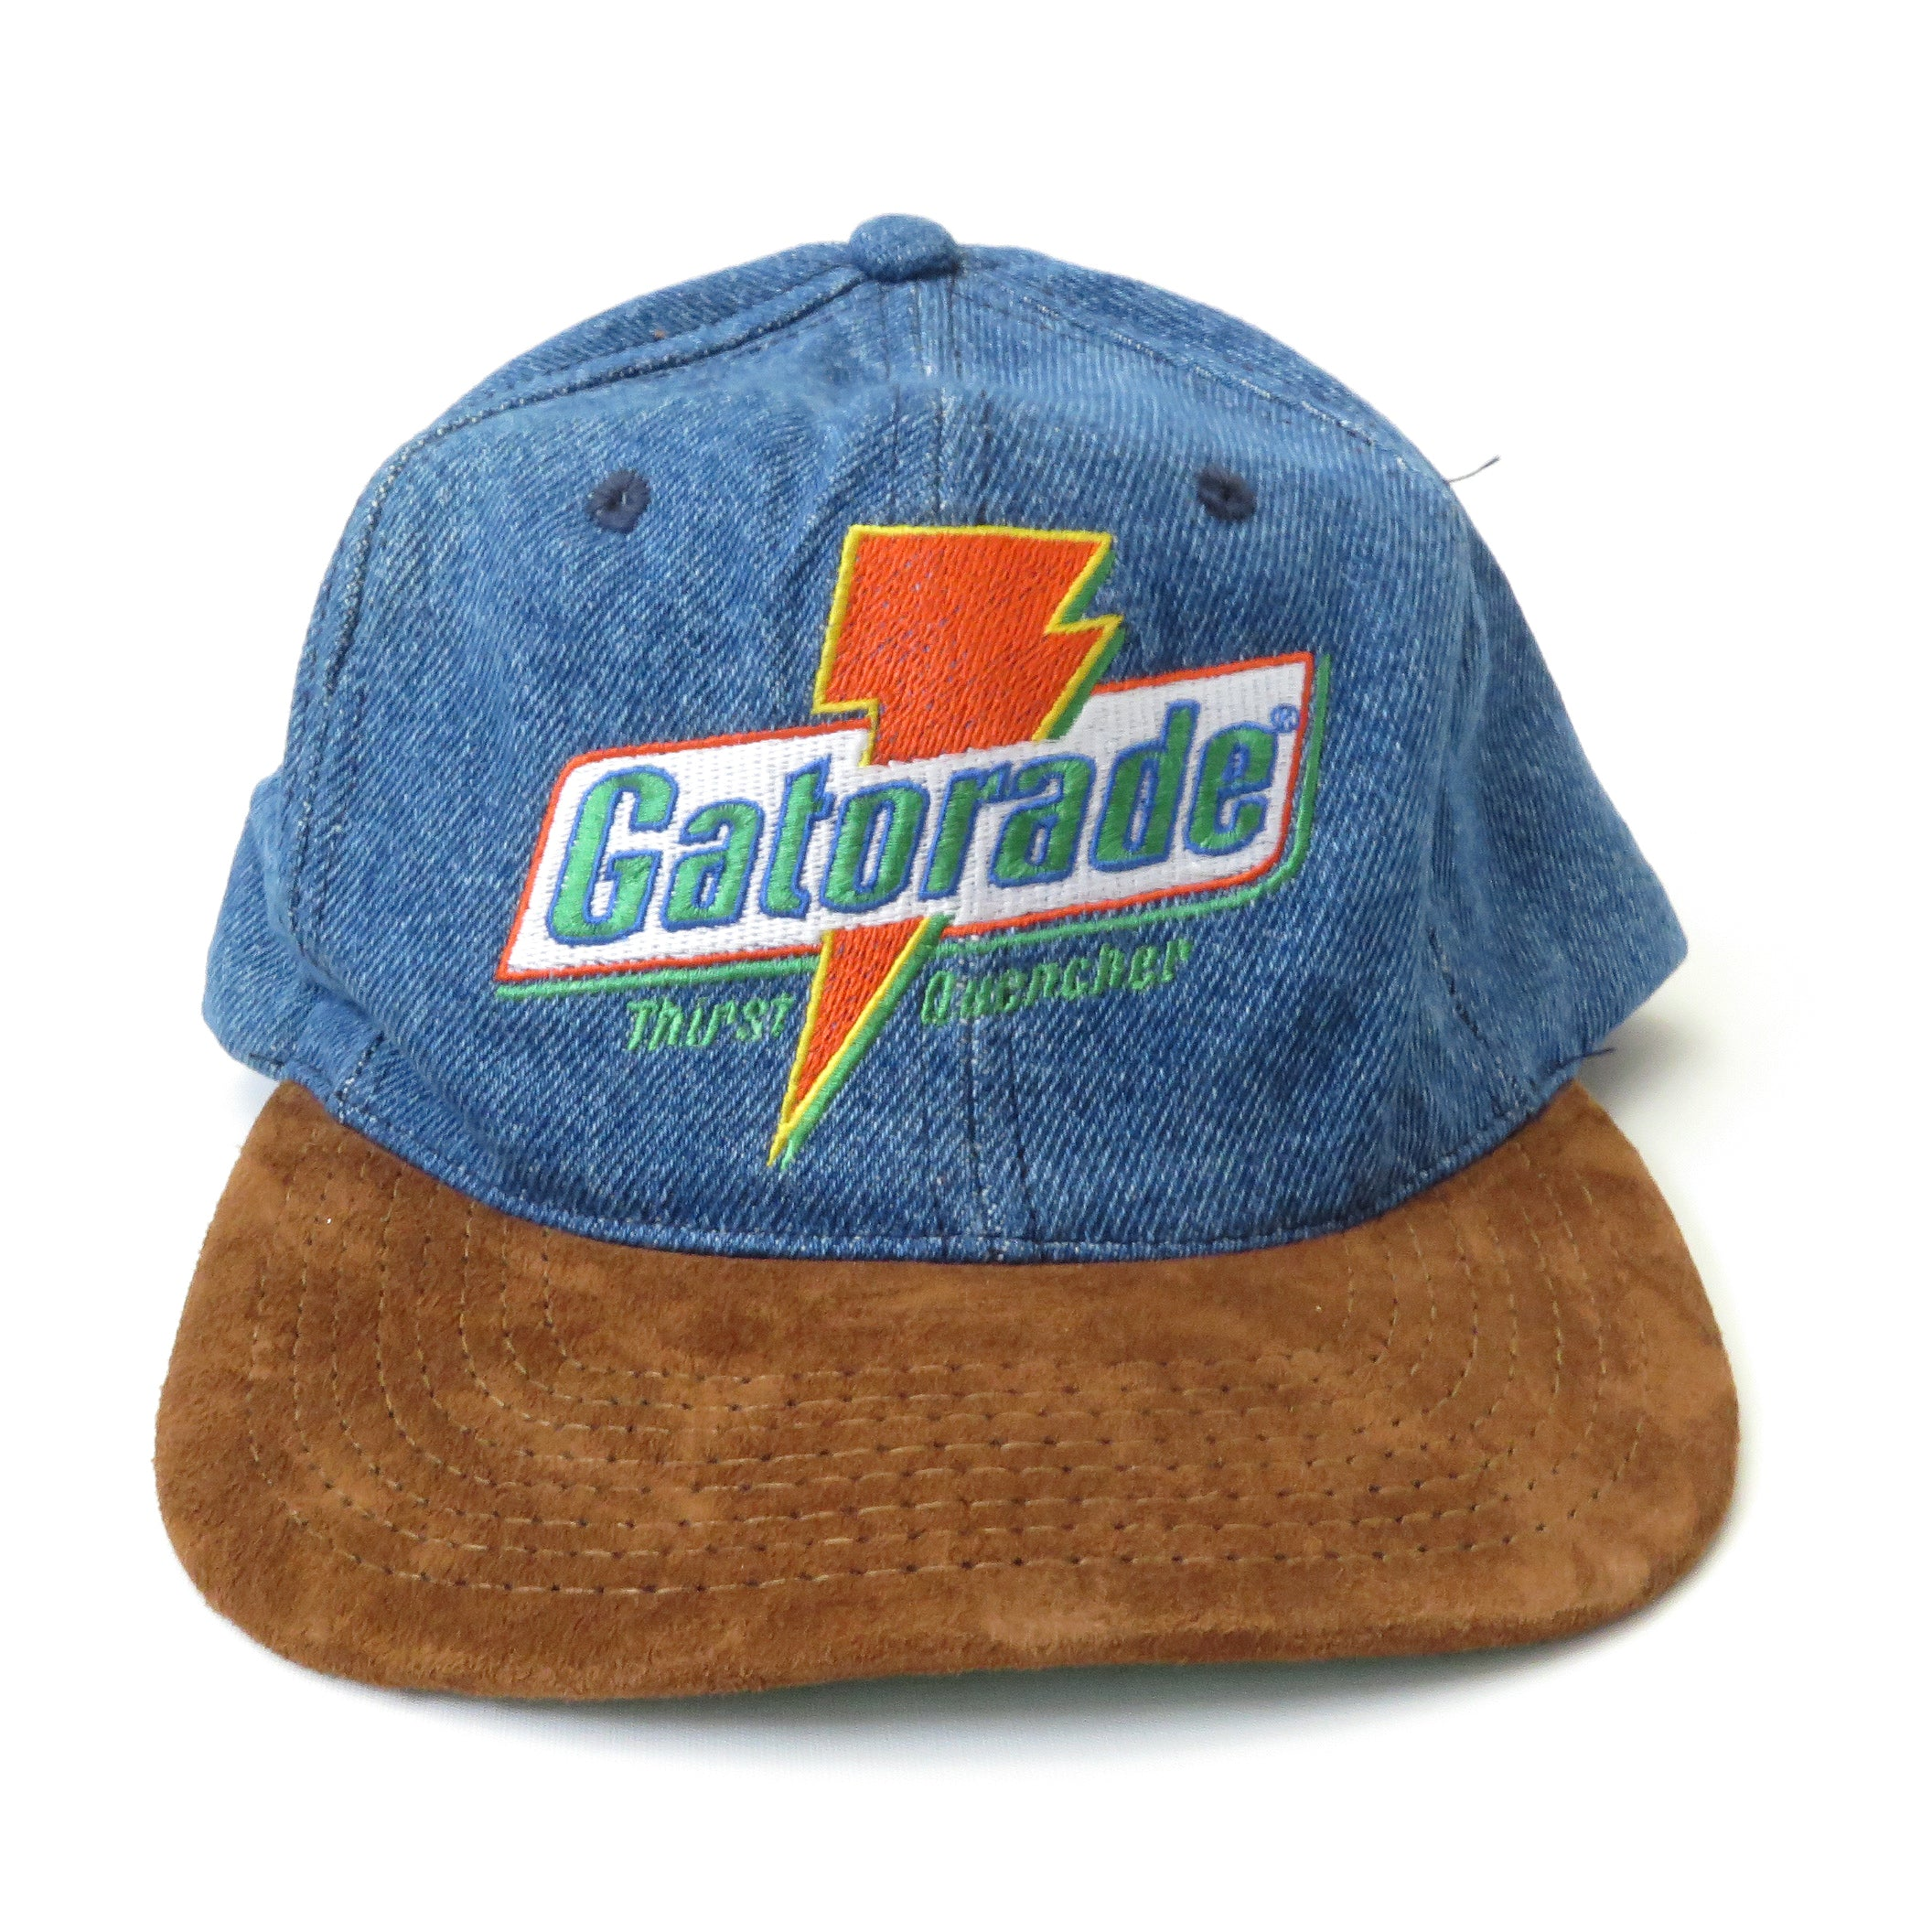 Vintage Gatorade Denim Snapback Hat